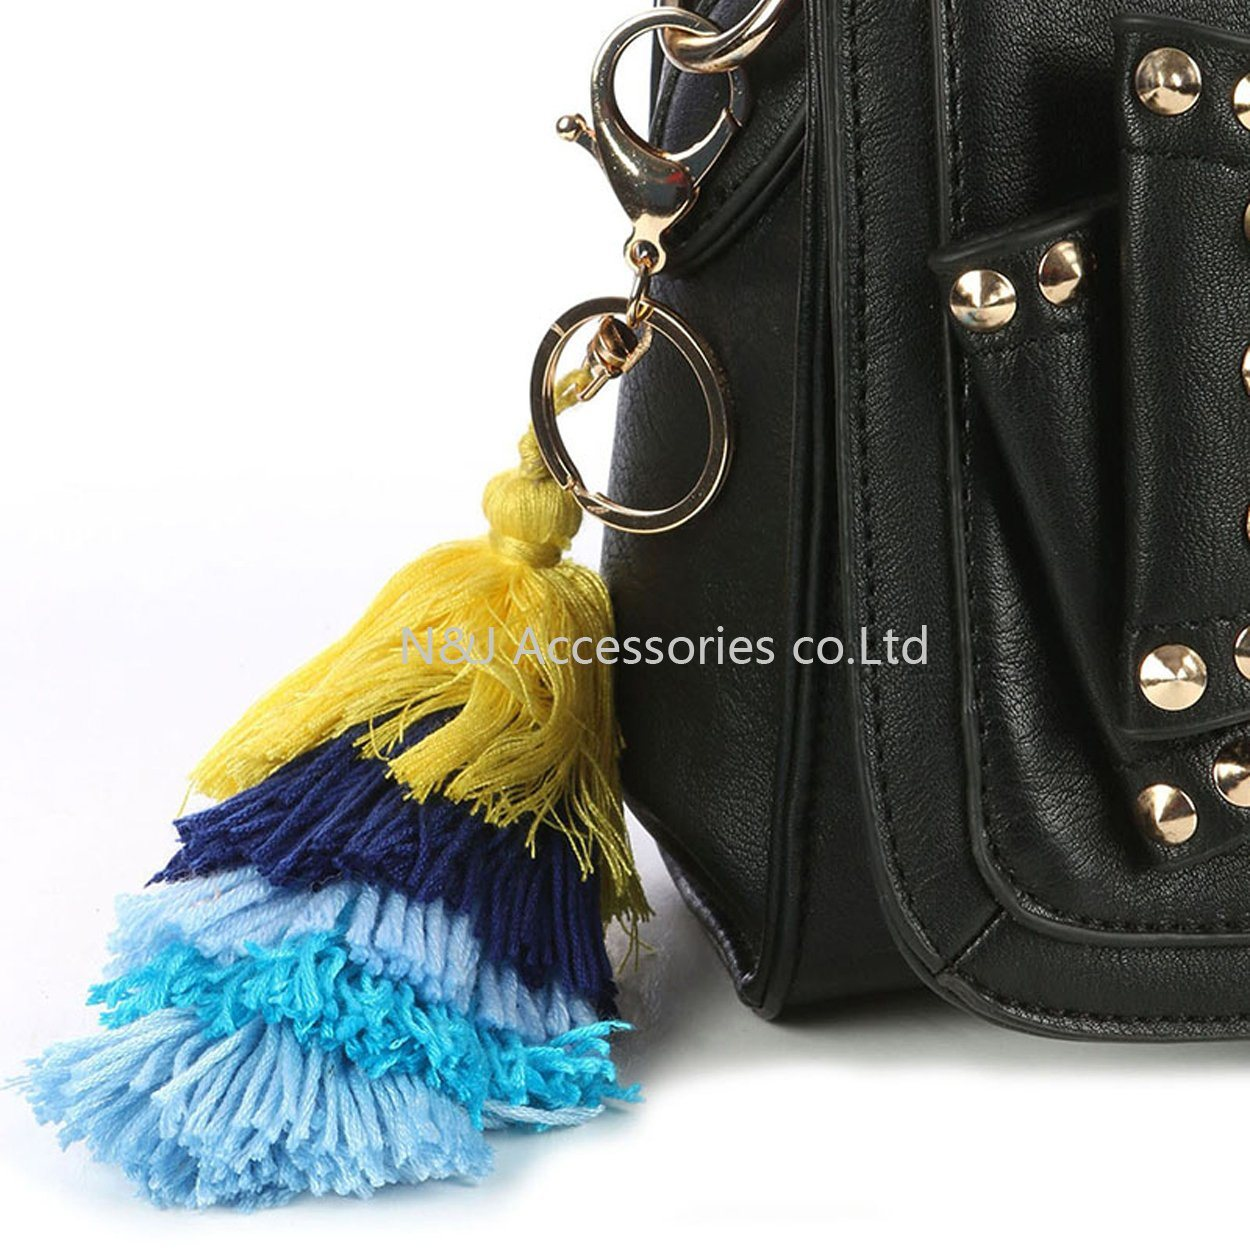 New Tassel Charm Triple Layer Cotton Ribbon for Key Chains Jewelry